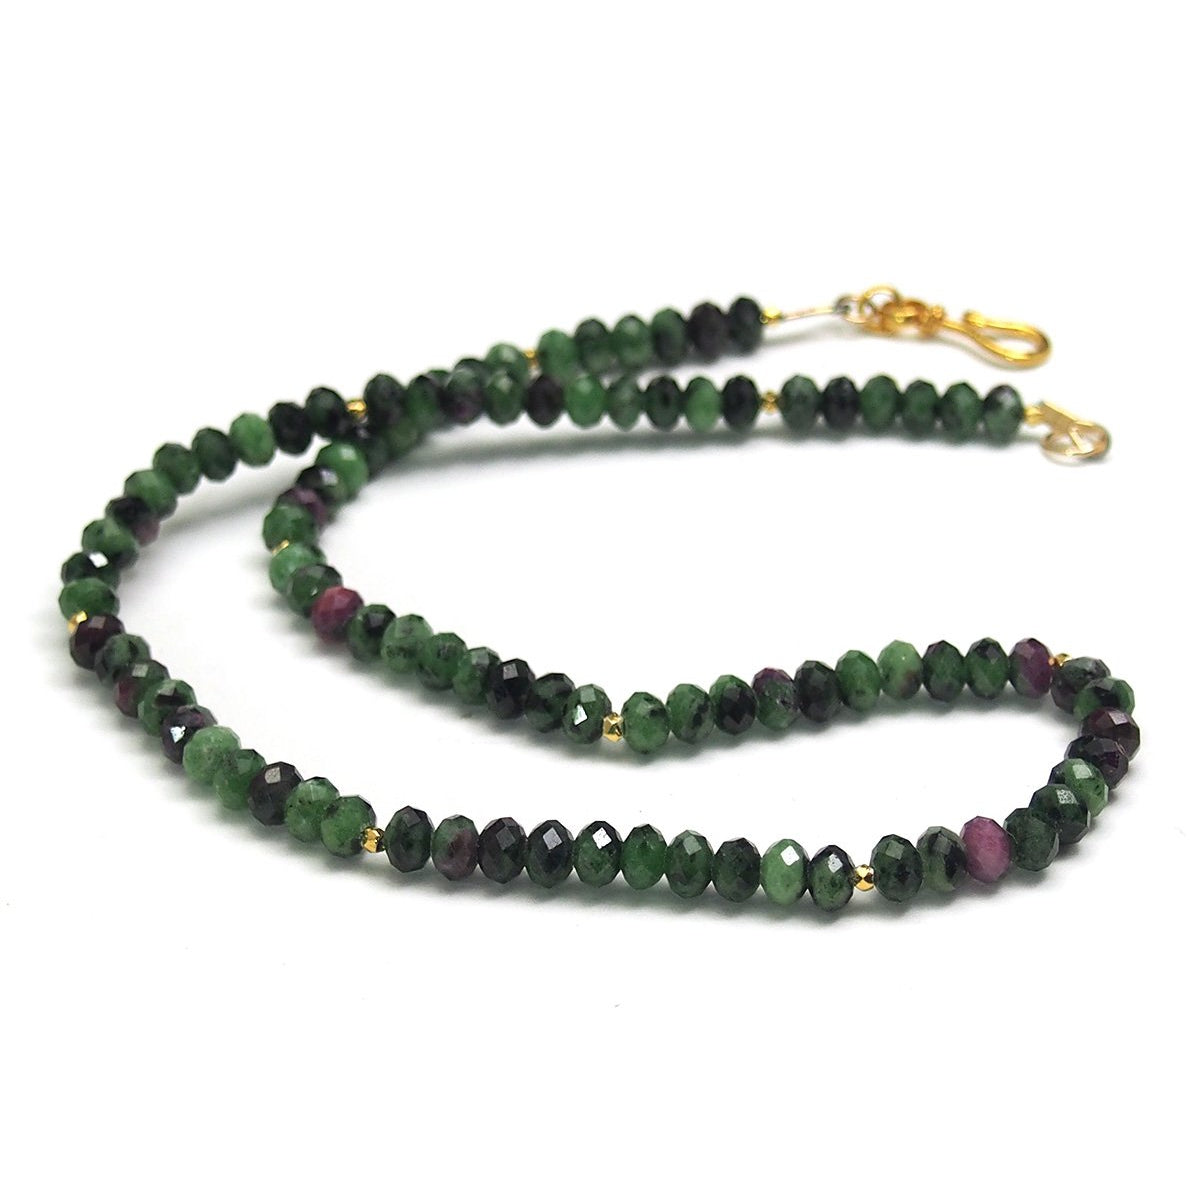 Ruby on Zoisite necklace